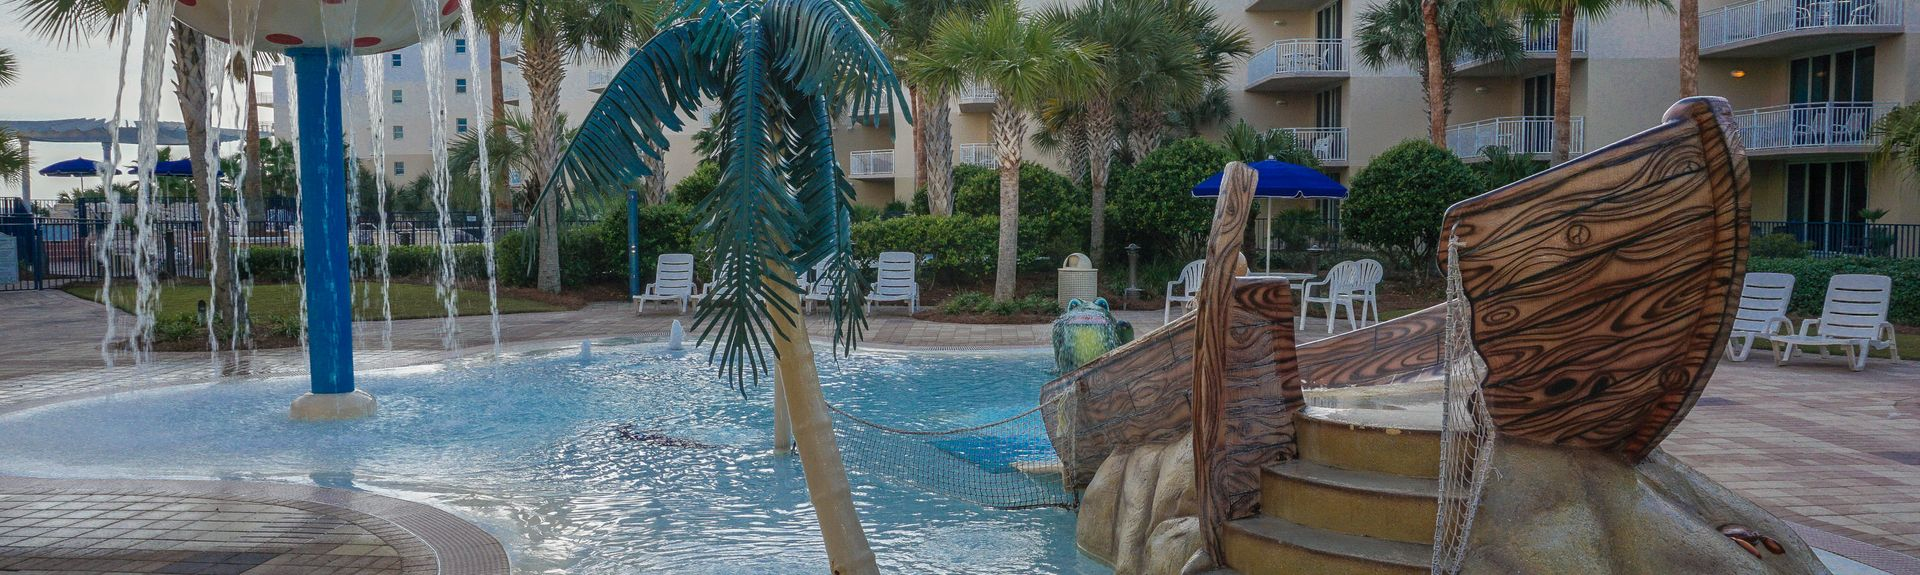 Waterscape Resort, Fort Walton Beach, FL, USA